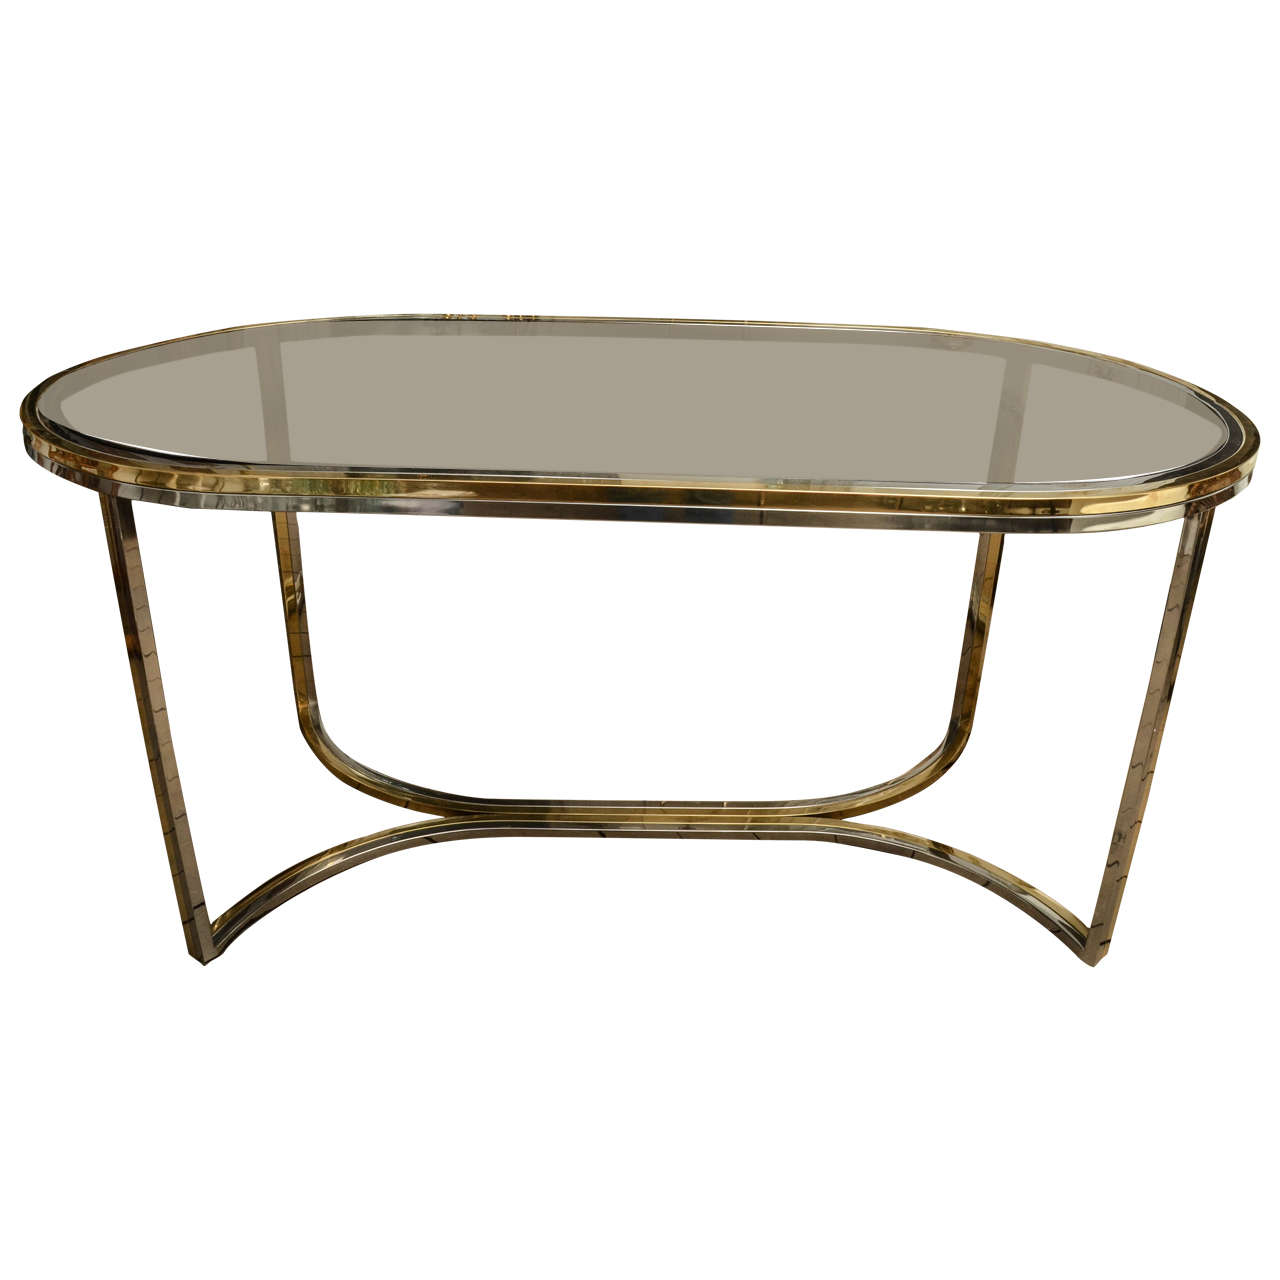 Chrome and brass oval dining table with smoked glass top for Glass dining table